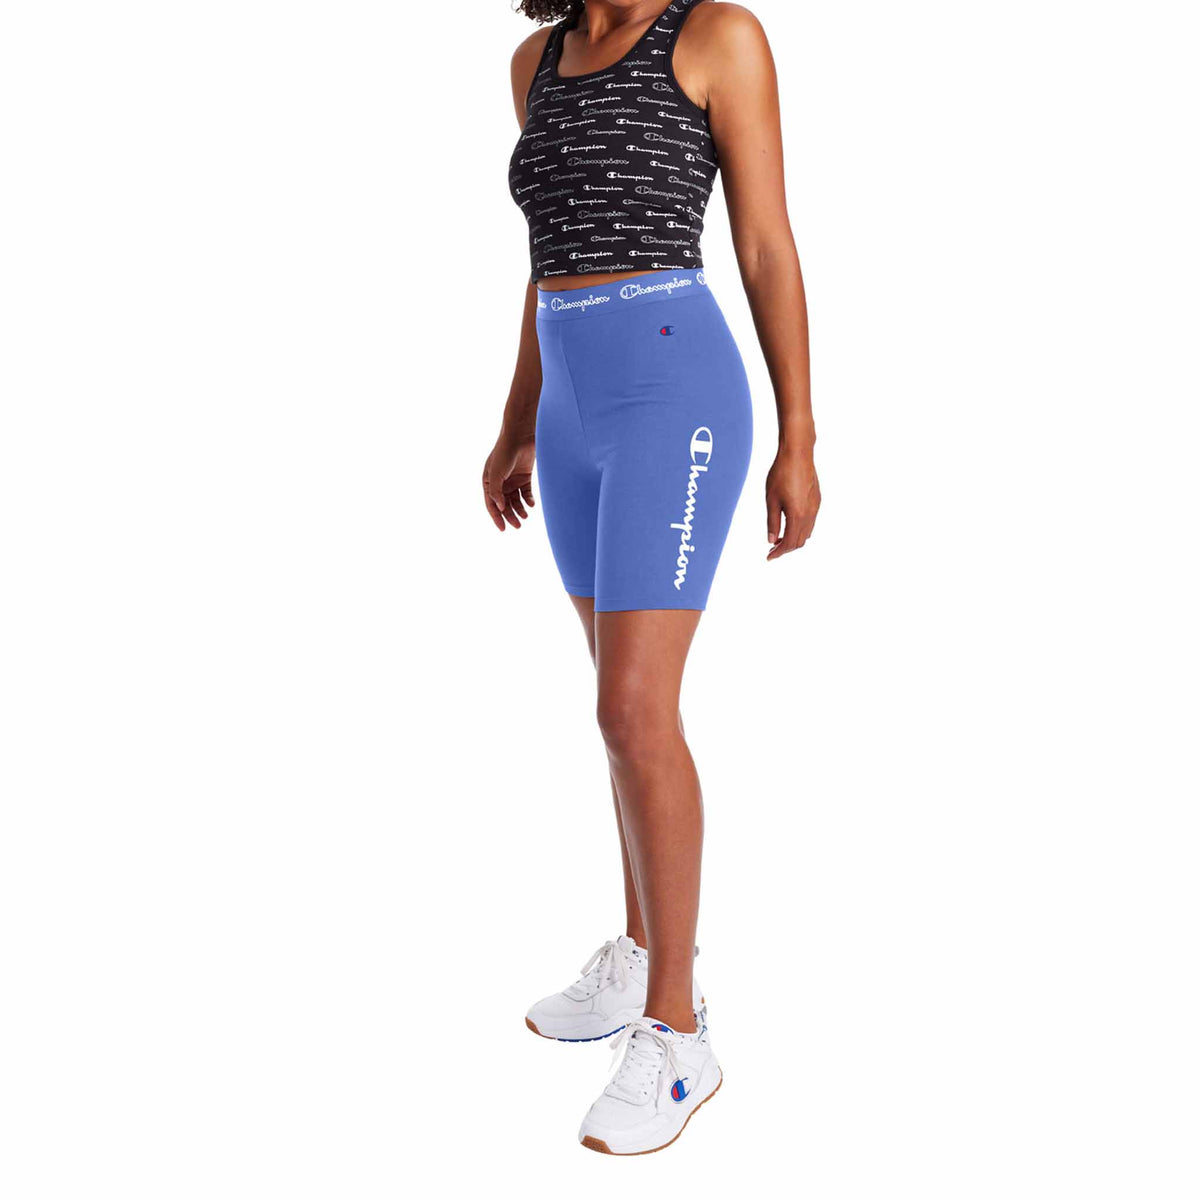 Champion Authentic Bike Short Graphic short de style cuissard pour femme